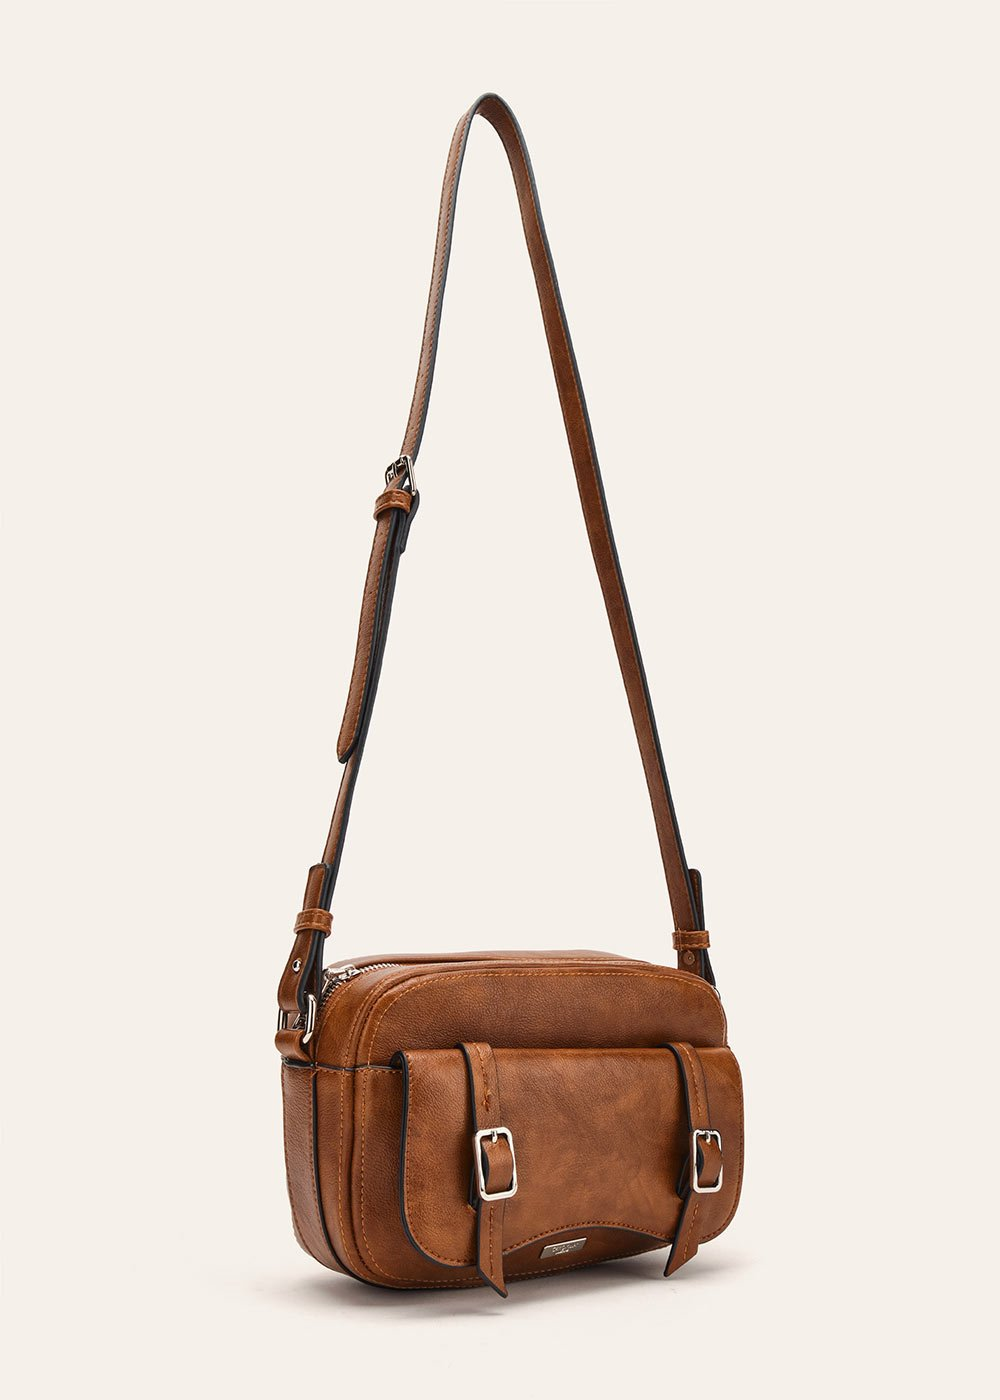 Belen shoulder bag with flap closure - Coccio	 - Woman